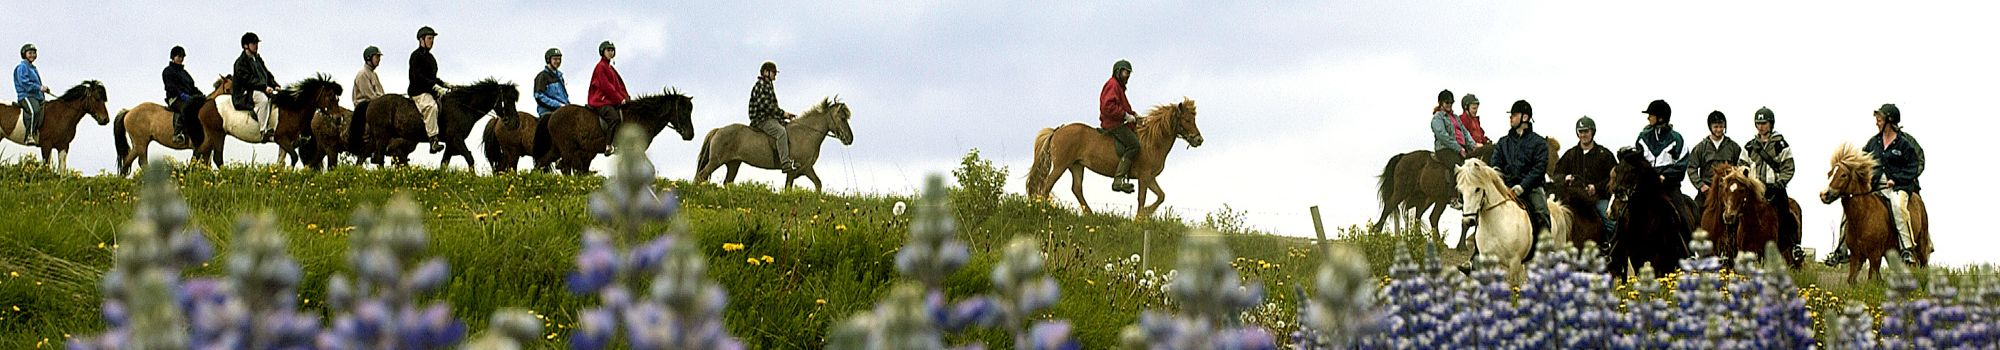 Horseback-riding-summer-iceland